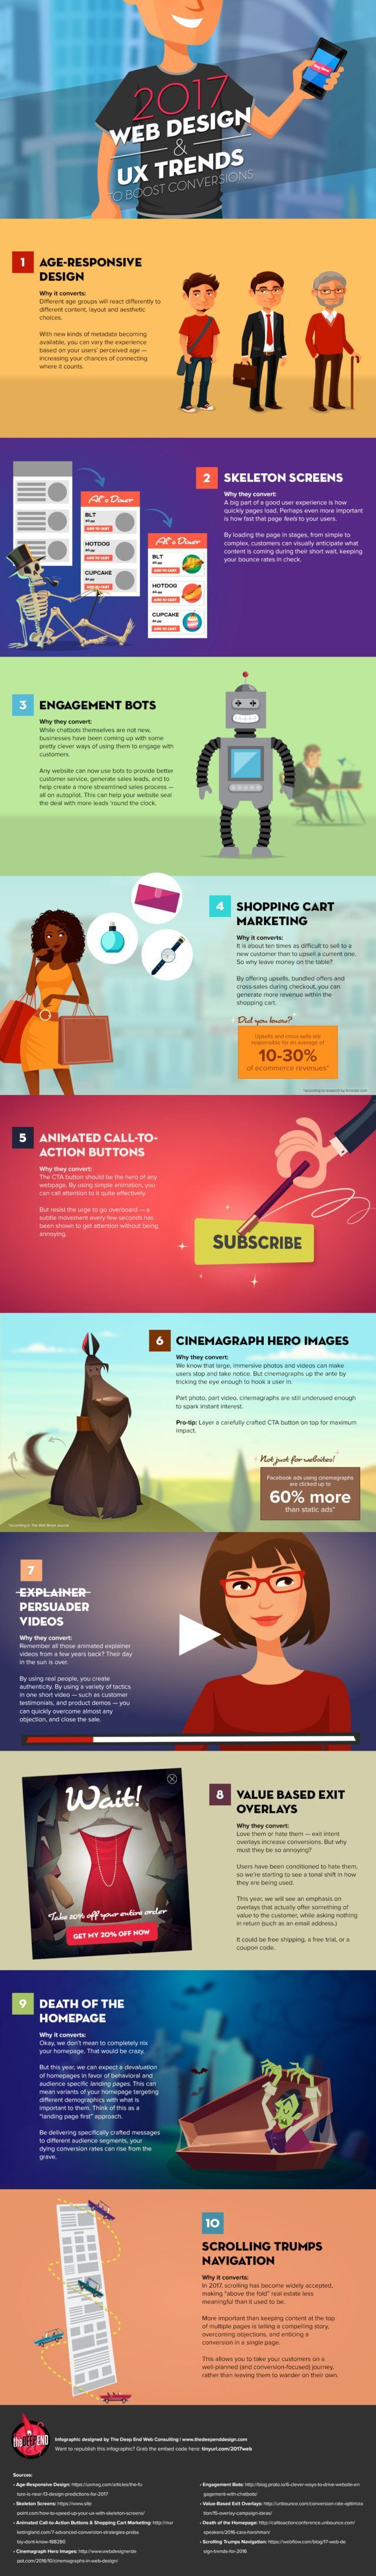 2017 Webdesign Trends Infographic